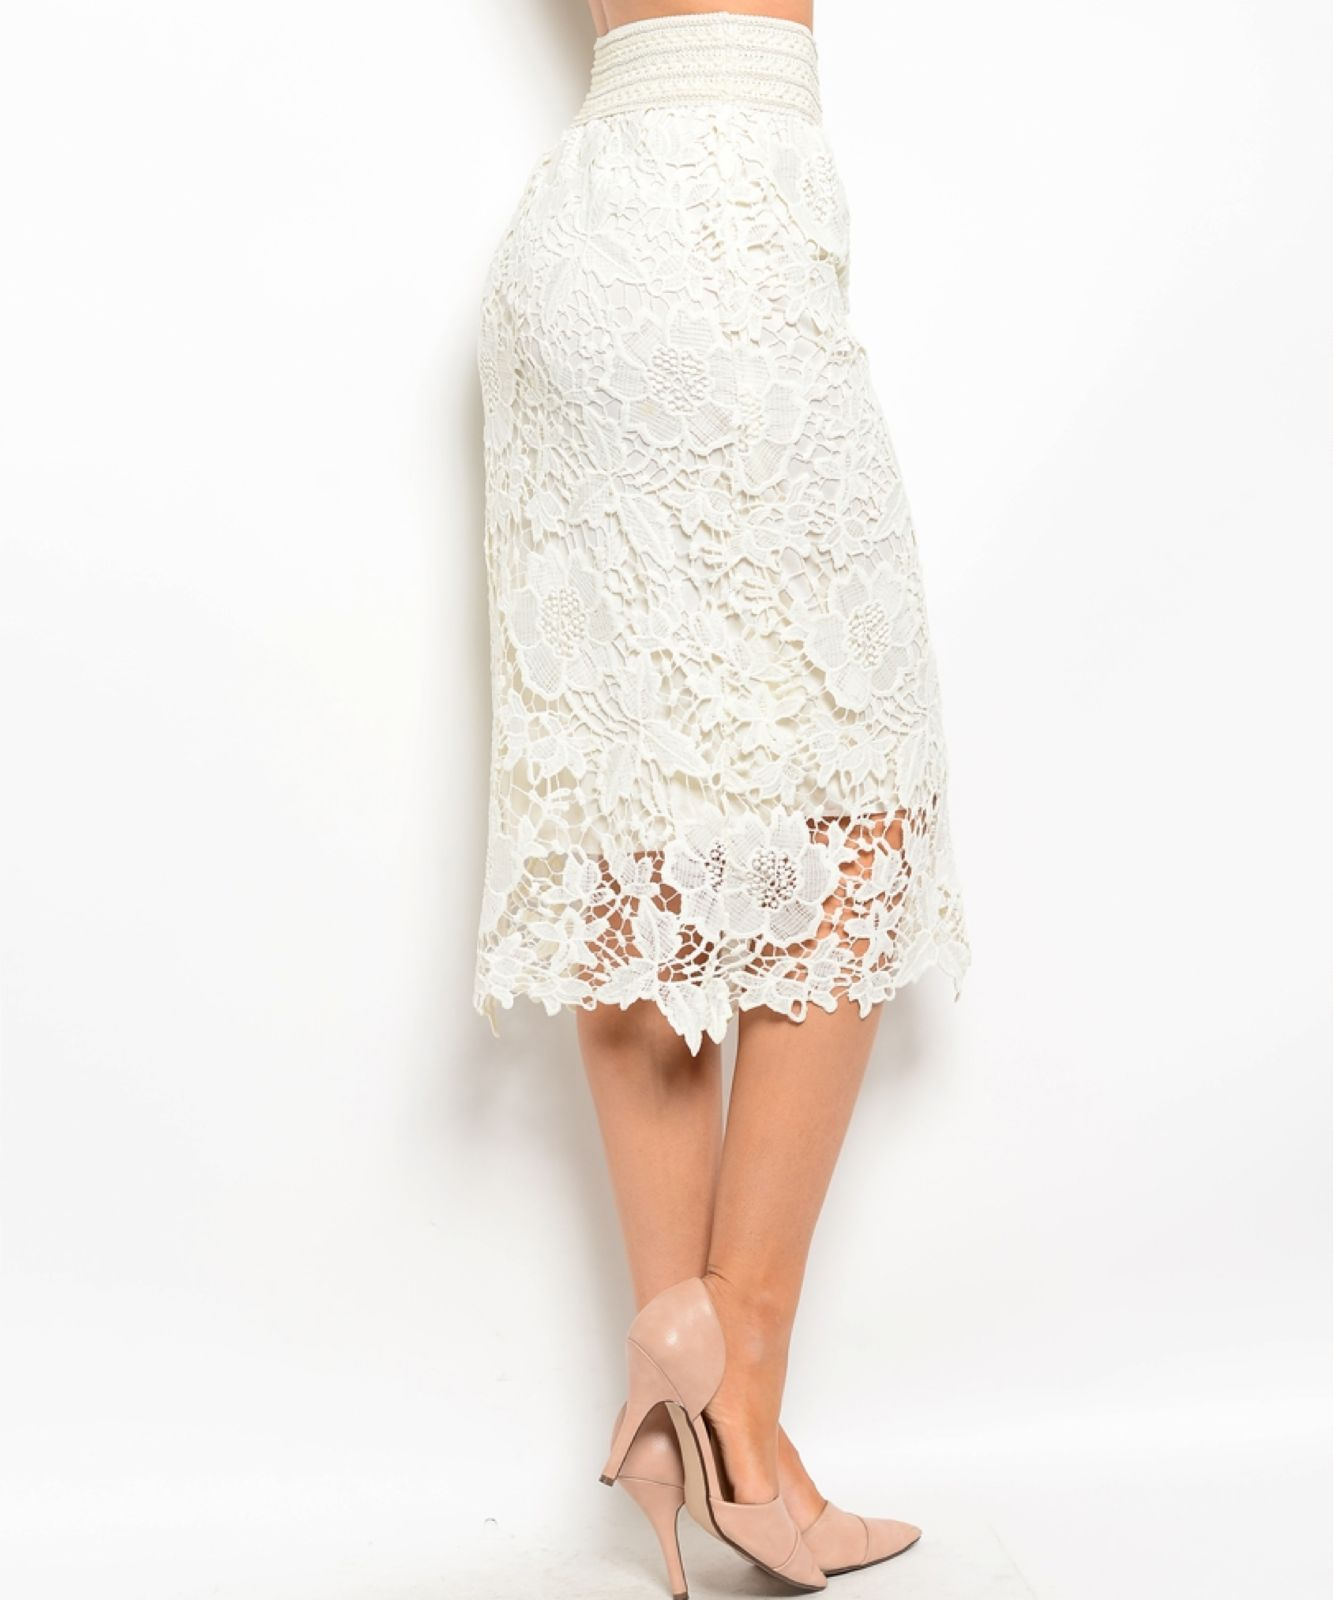 Image 3 of Chic Crochet Lace Lined Jr Skirt, Cocktail Club Party, Black, Ivory or White - B